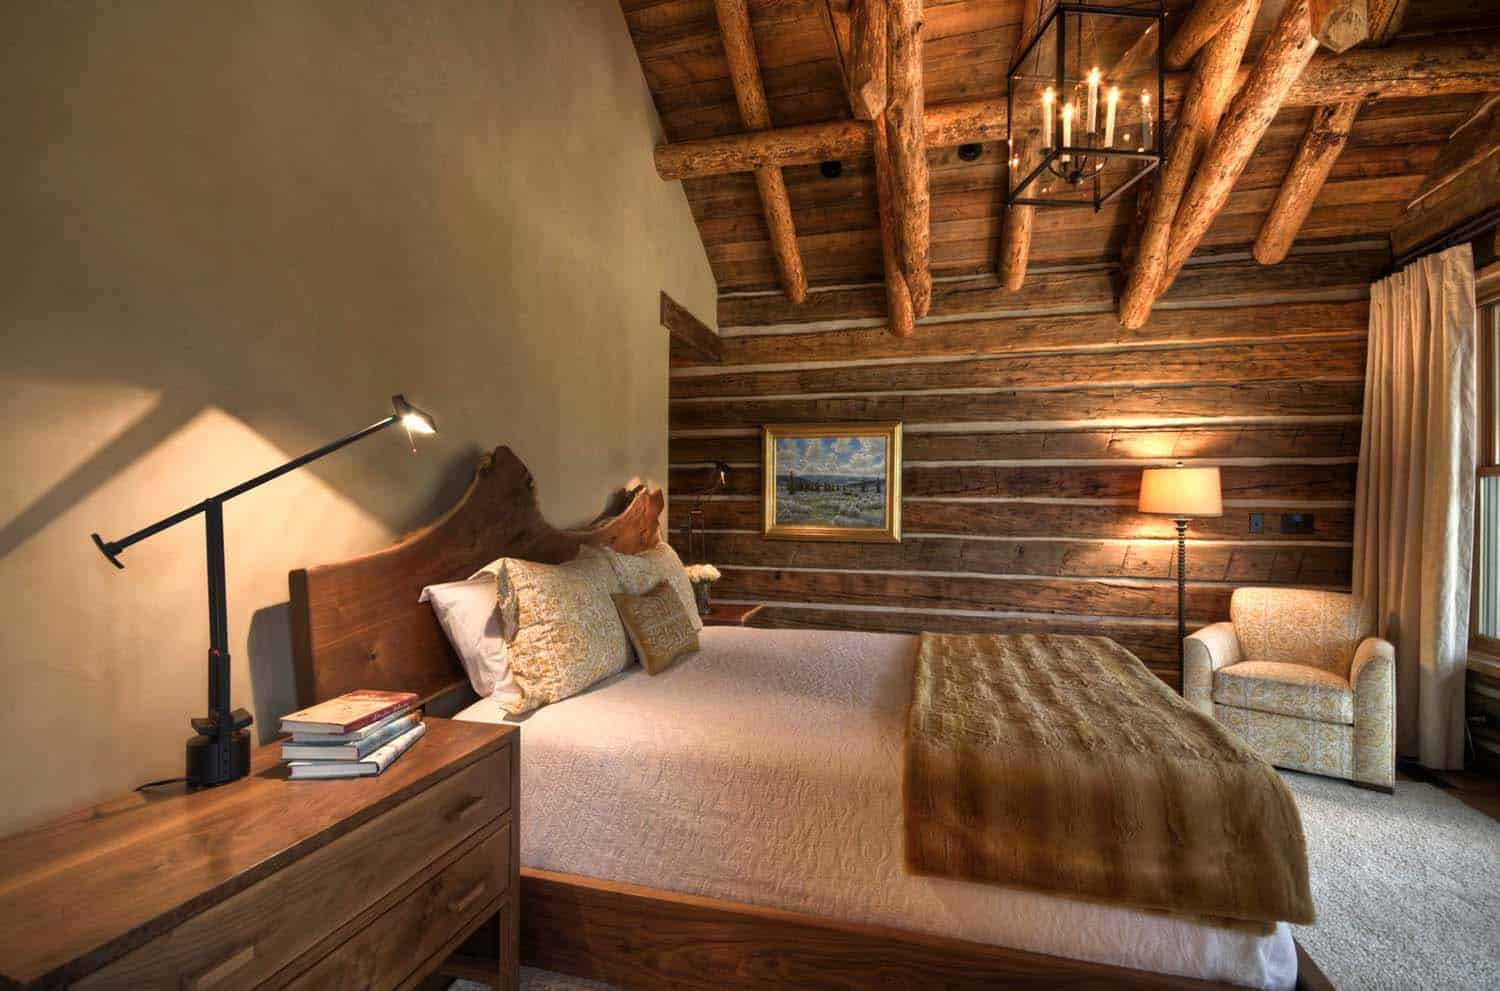 Rustic Mountain Home-Laura Fedro Interiors-12-1 Kindesign